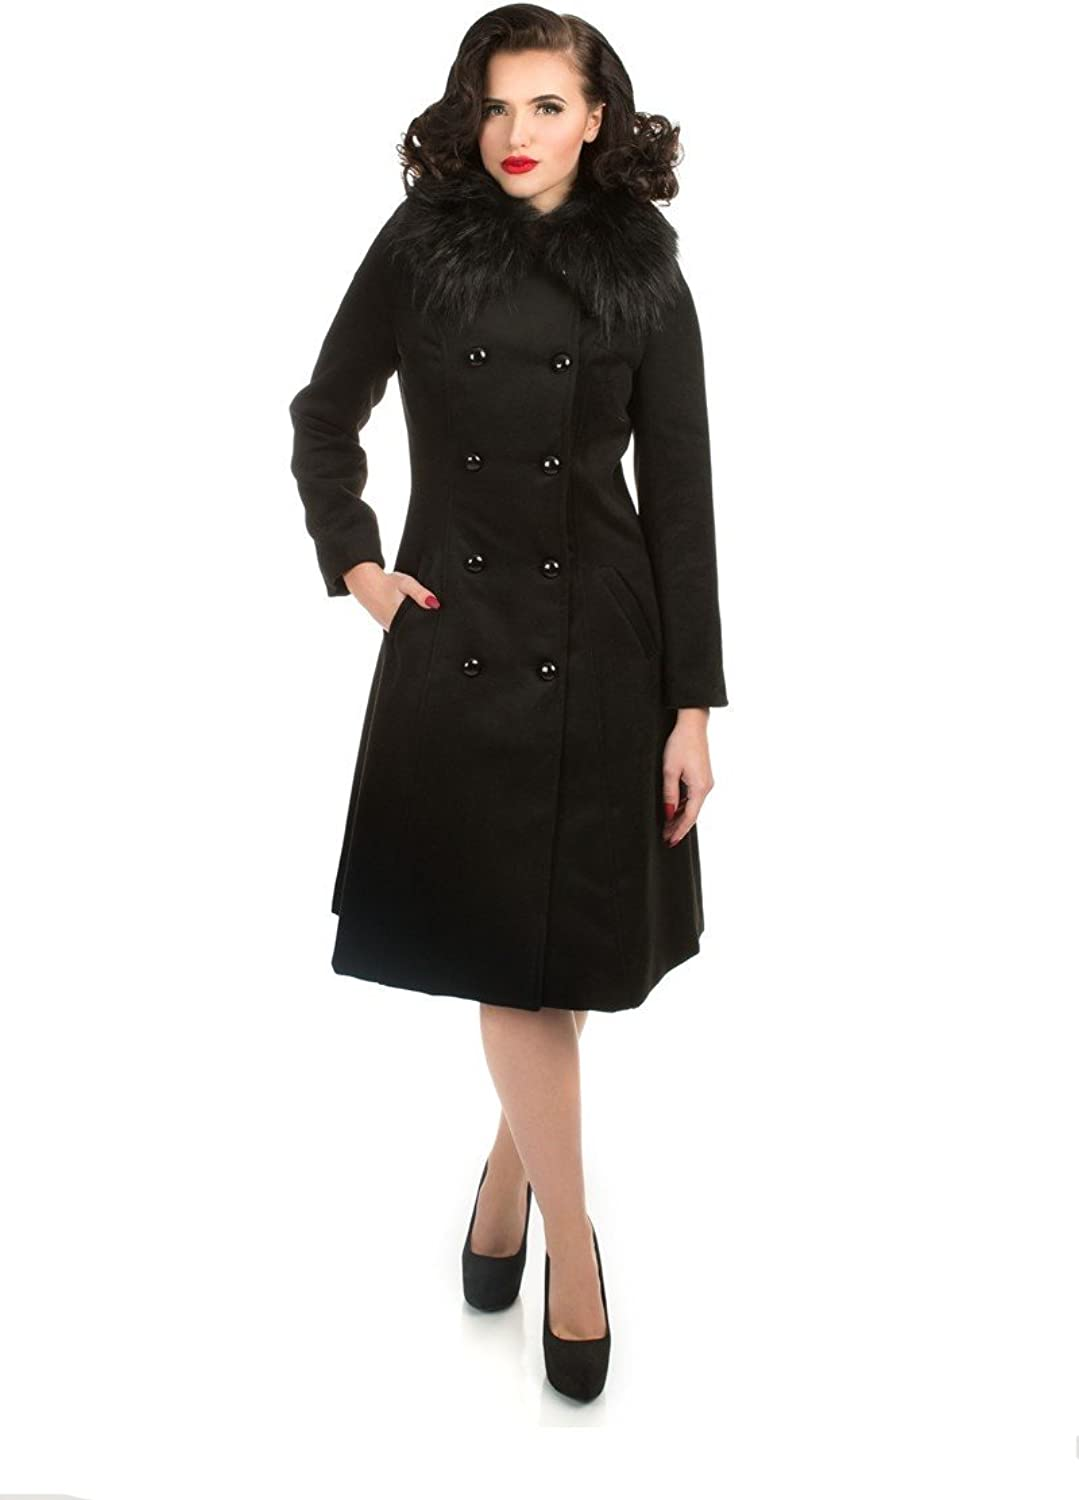 Hearts & pinks Chrissette Coat in Black (Shipped from The US and US Sizes)